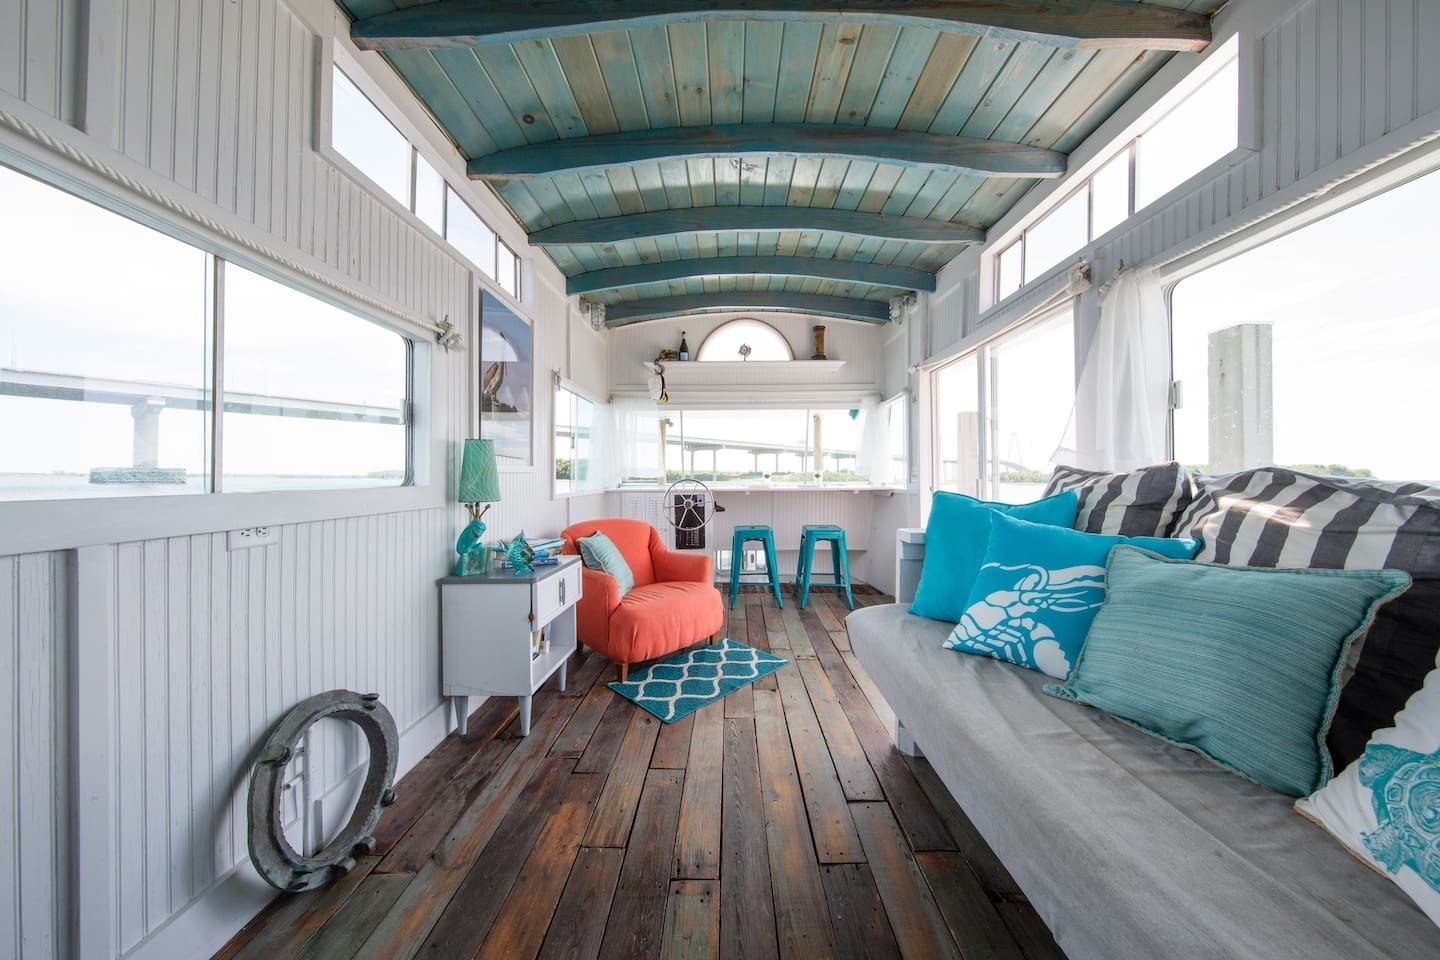 Located in a peaceful marine in downtown Charleston, Carolina, this compact and cozy houseboat was gutted and refurbished with reclaimed materials and comfortably sleeps three.